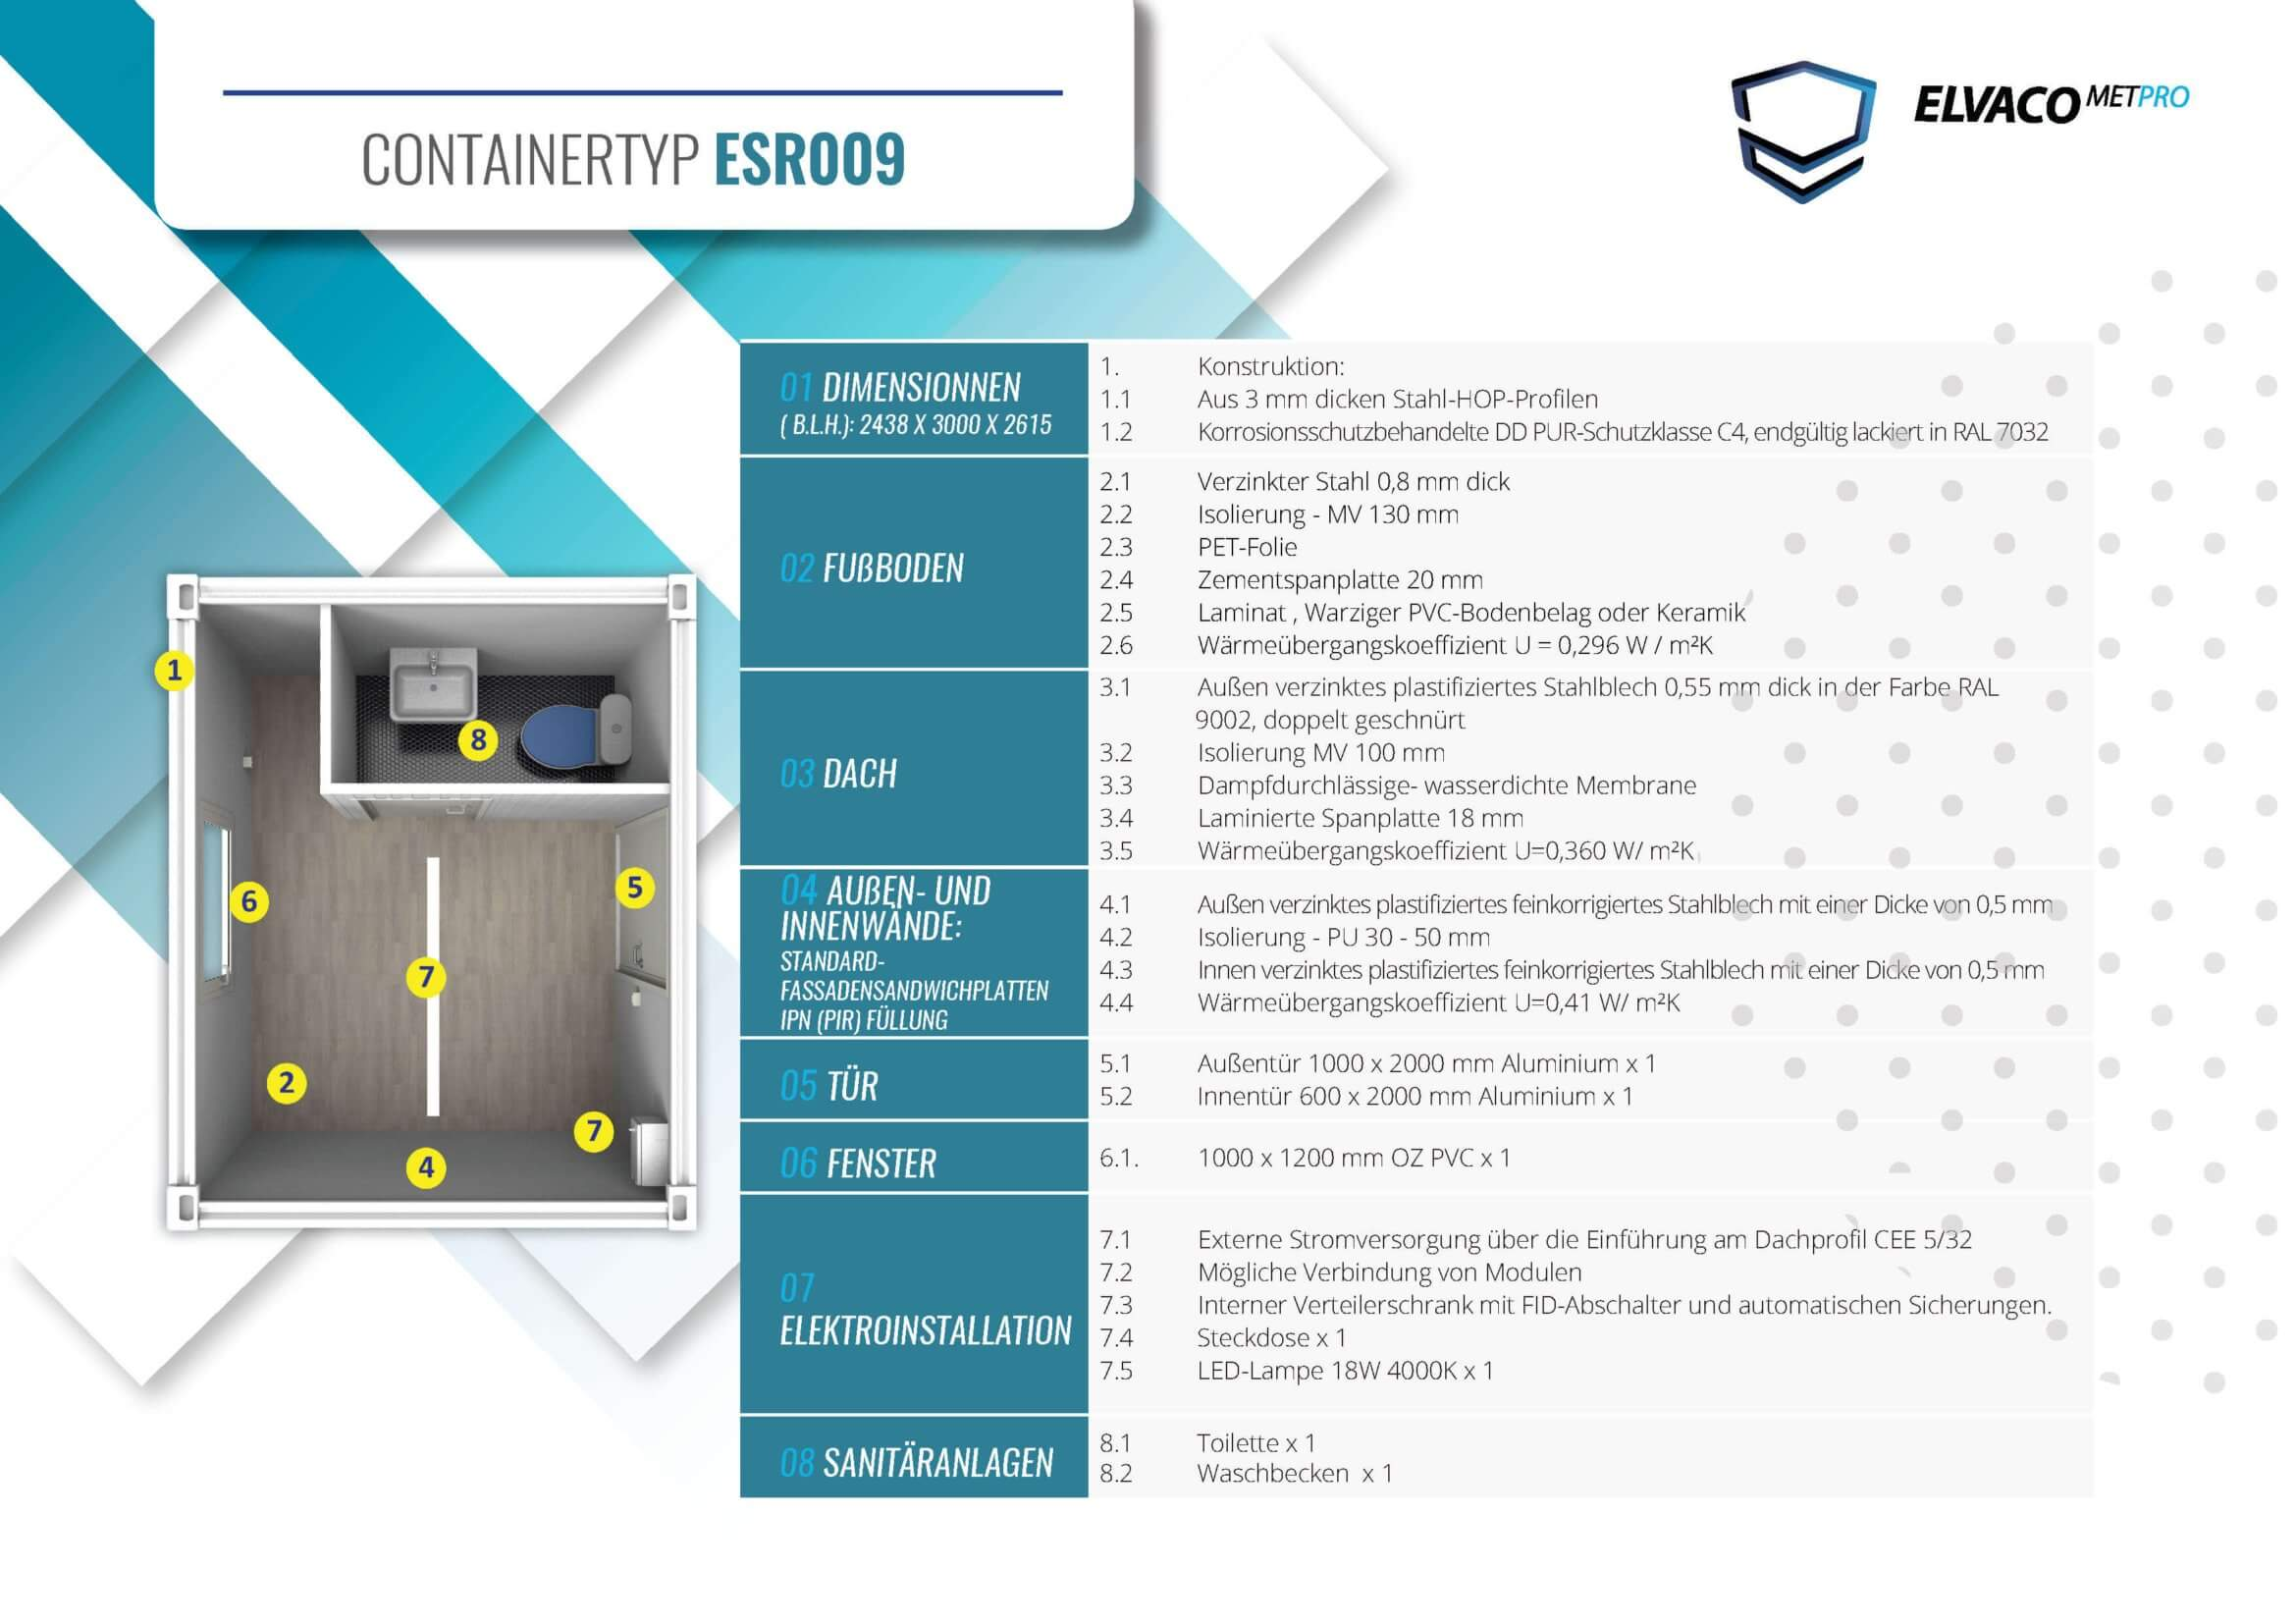 Elvaco MetPro Container - Modulare Systeme